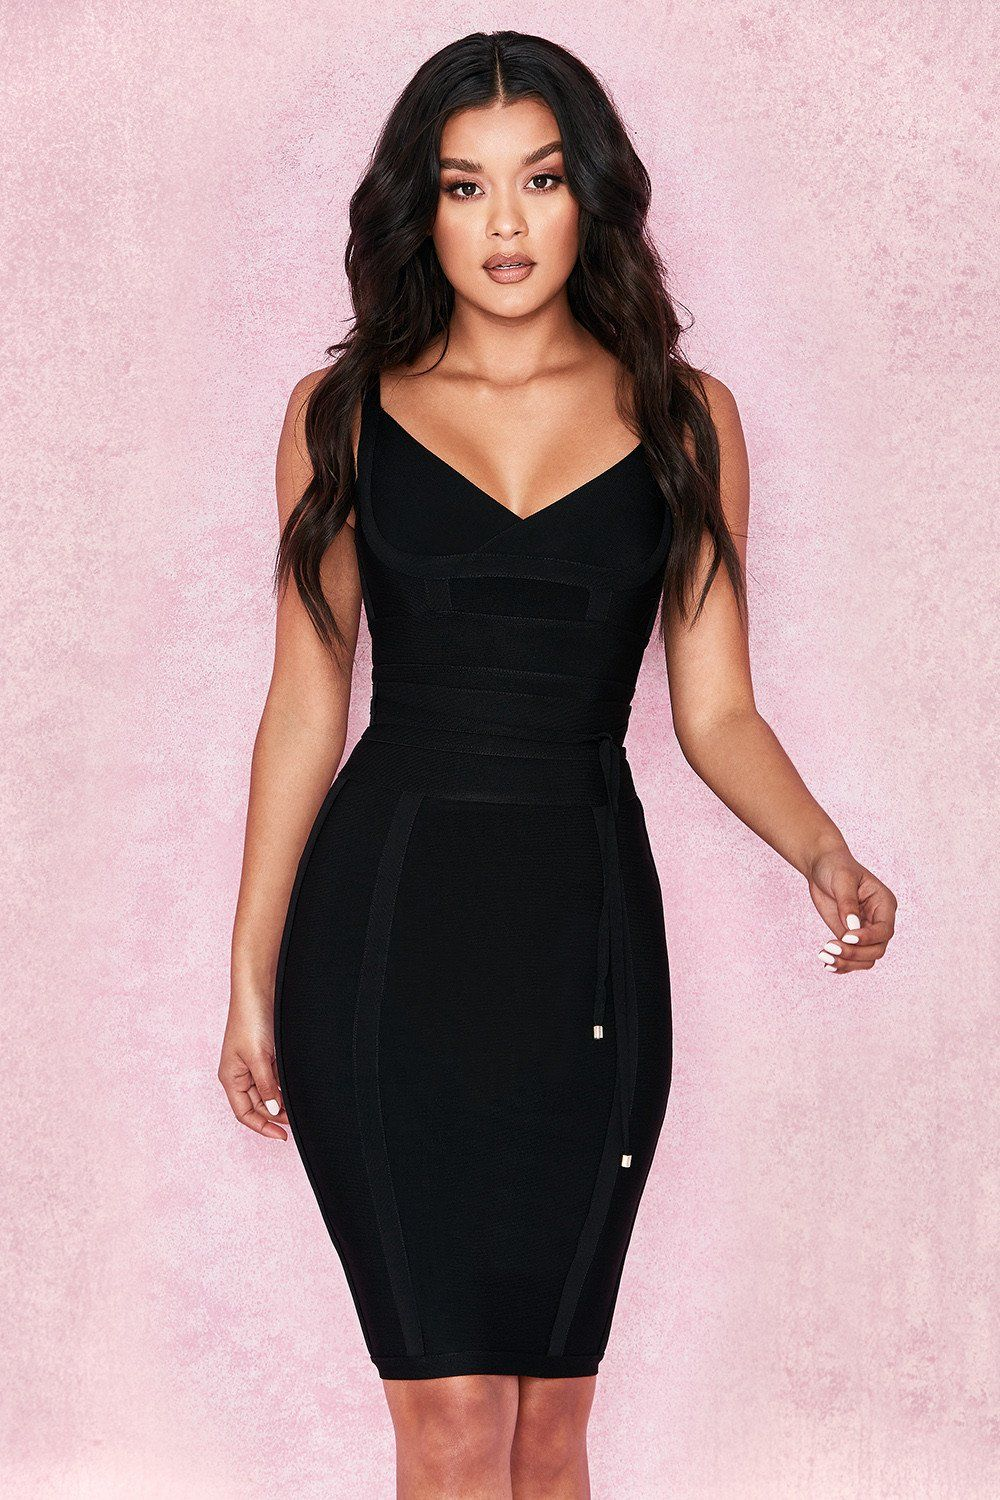 a87eed1717d250 Bring the flair this season in this figure-shaping bodycon midi dress. Cut  from thick, stretchy bandage material, the Cara dress is designed to hug  your ...